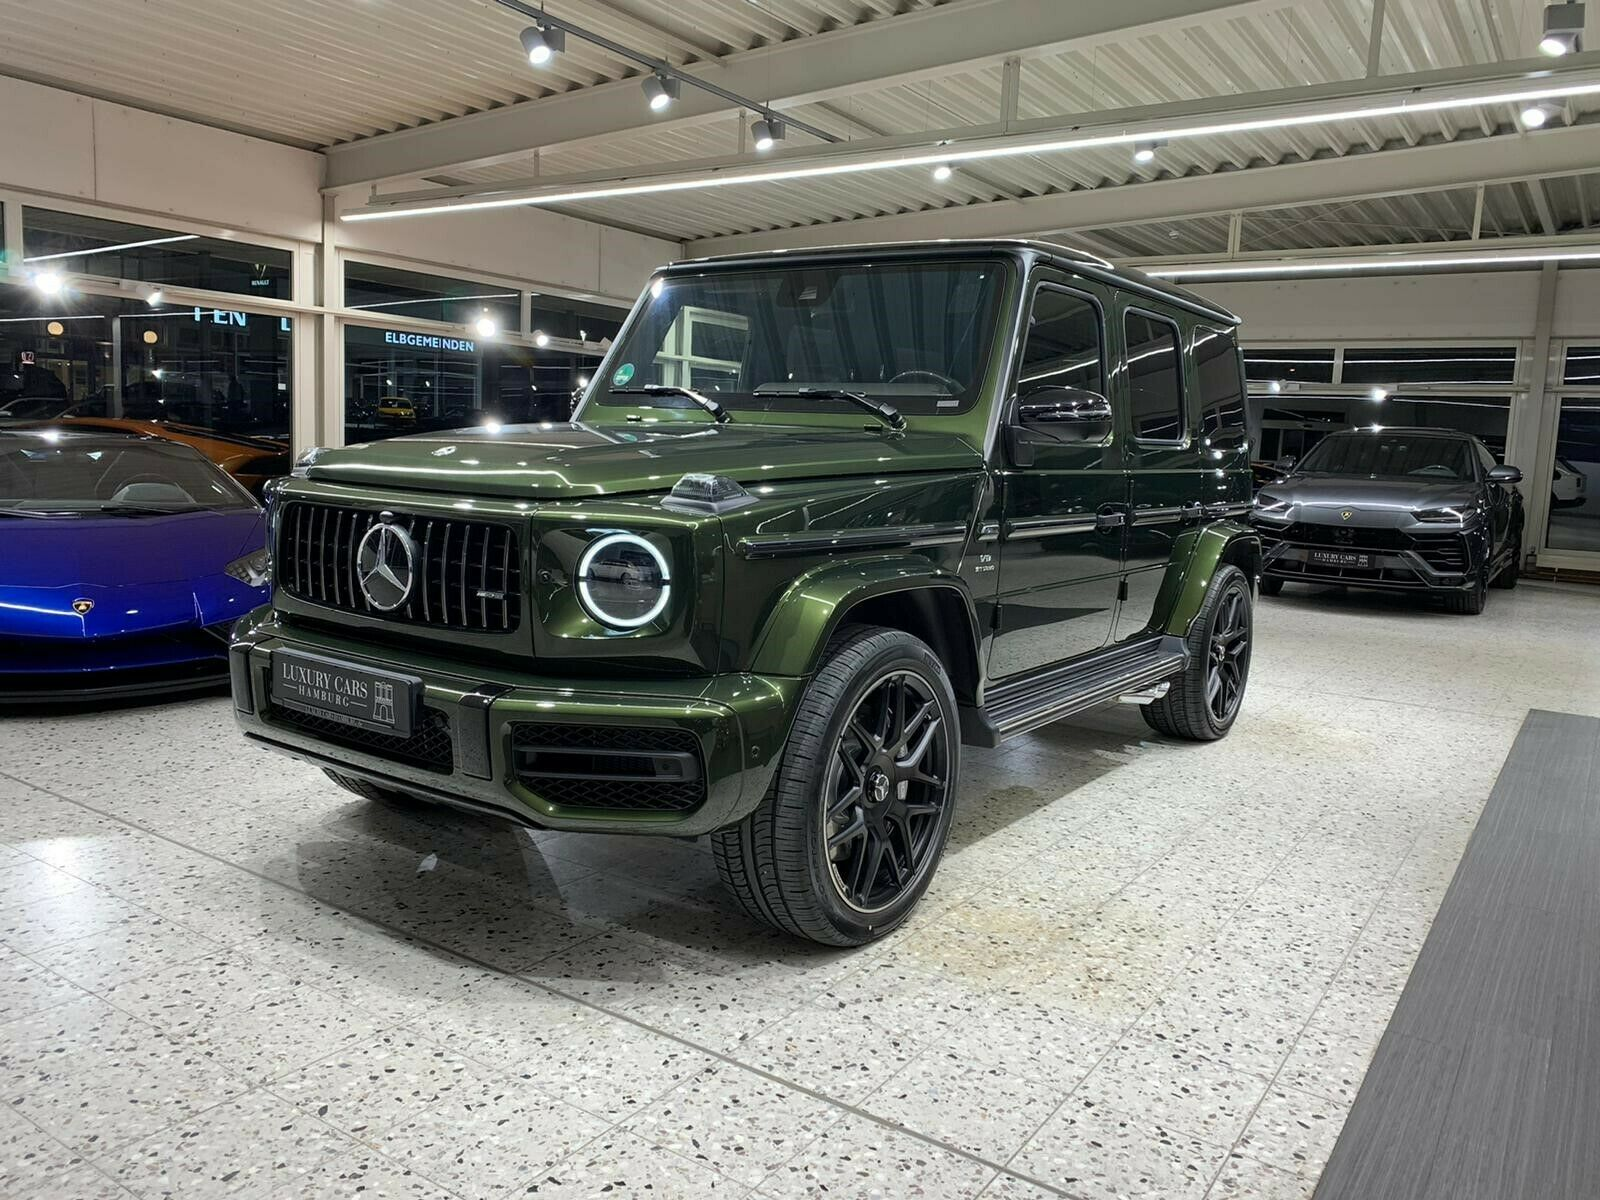 Mercedes Benz G 63 Amg 2020 Luxury Pulse Cars Germany For Sale On Luxurypulse